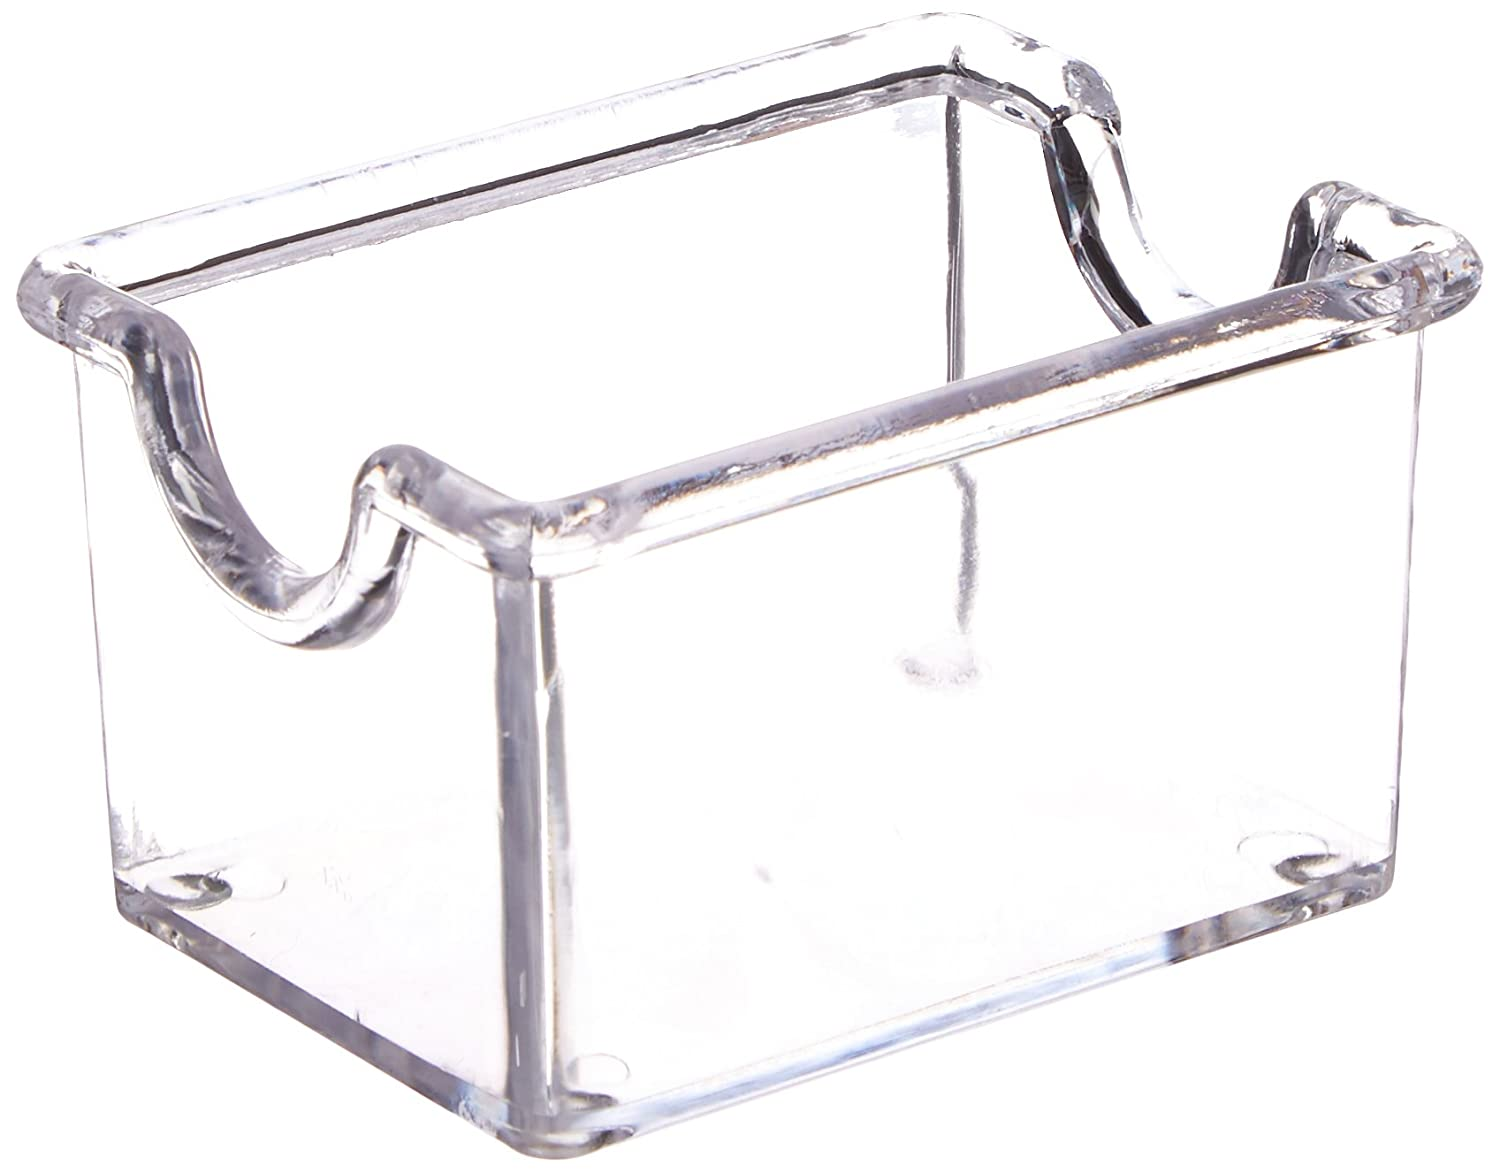 New Star Foodservice 28447 Plastic Sugar Packet Holder, Clear, Set of 12